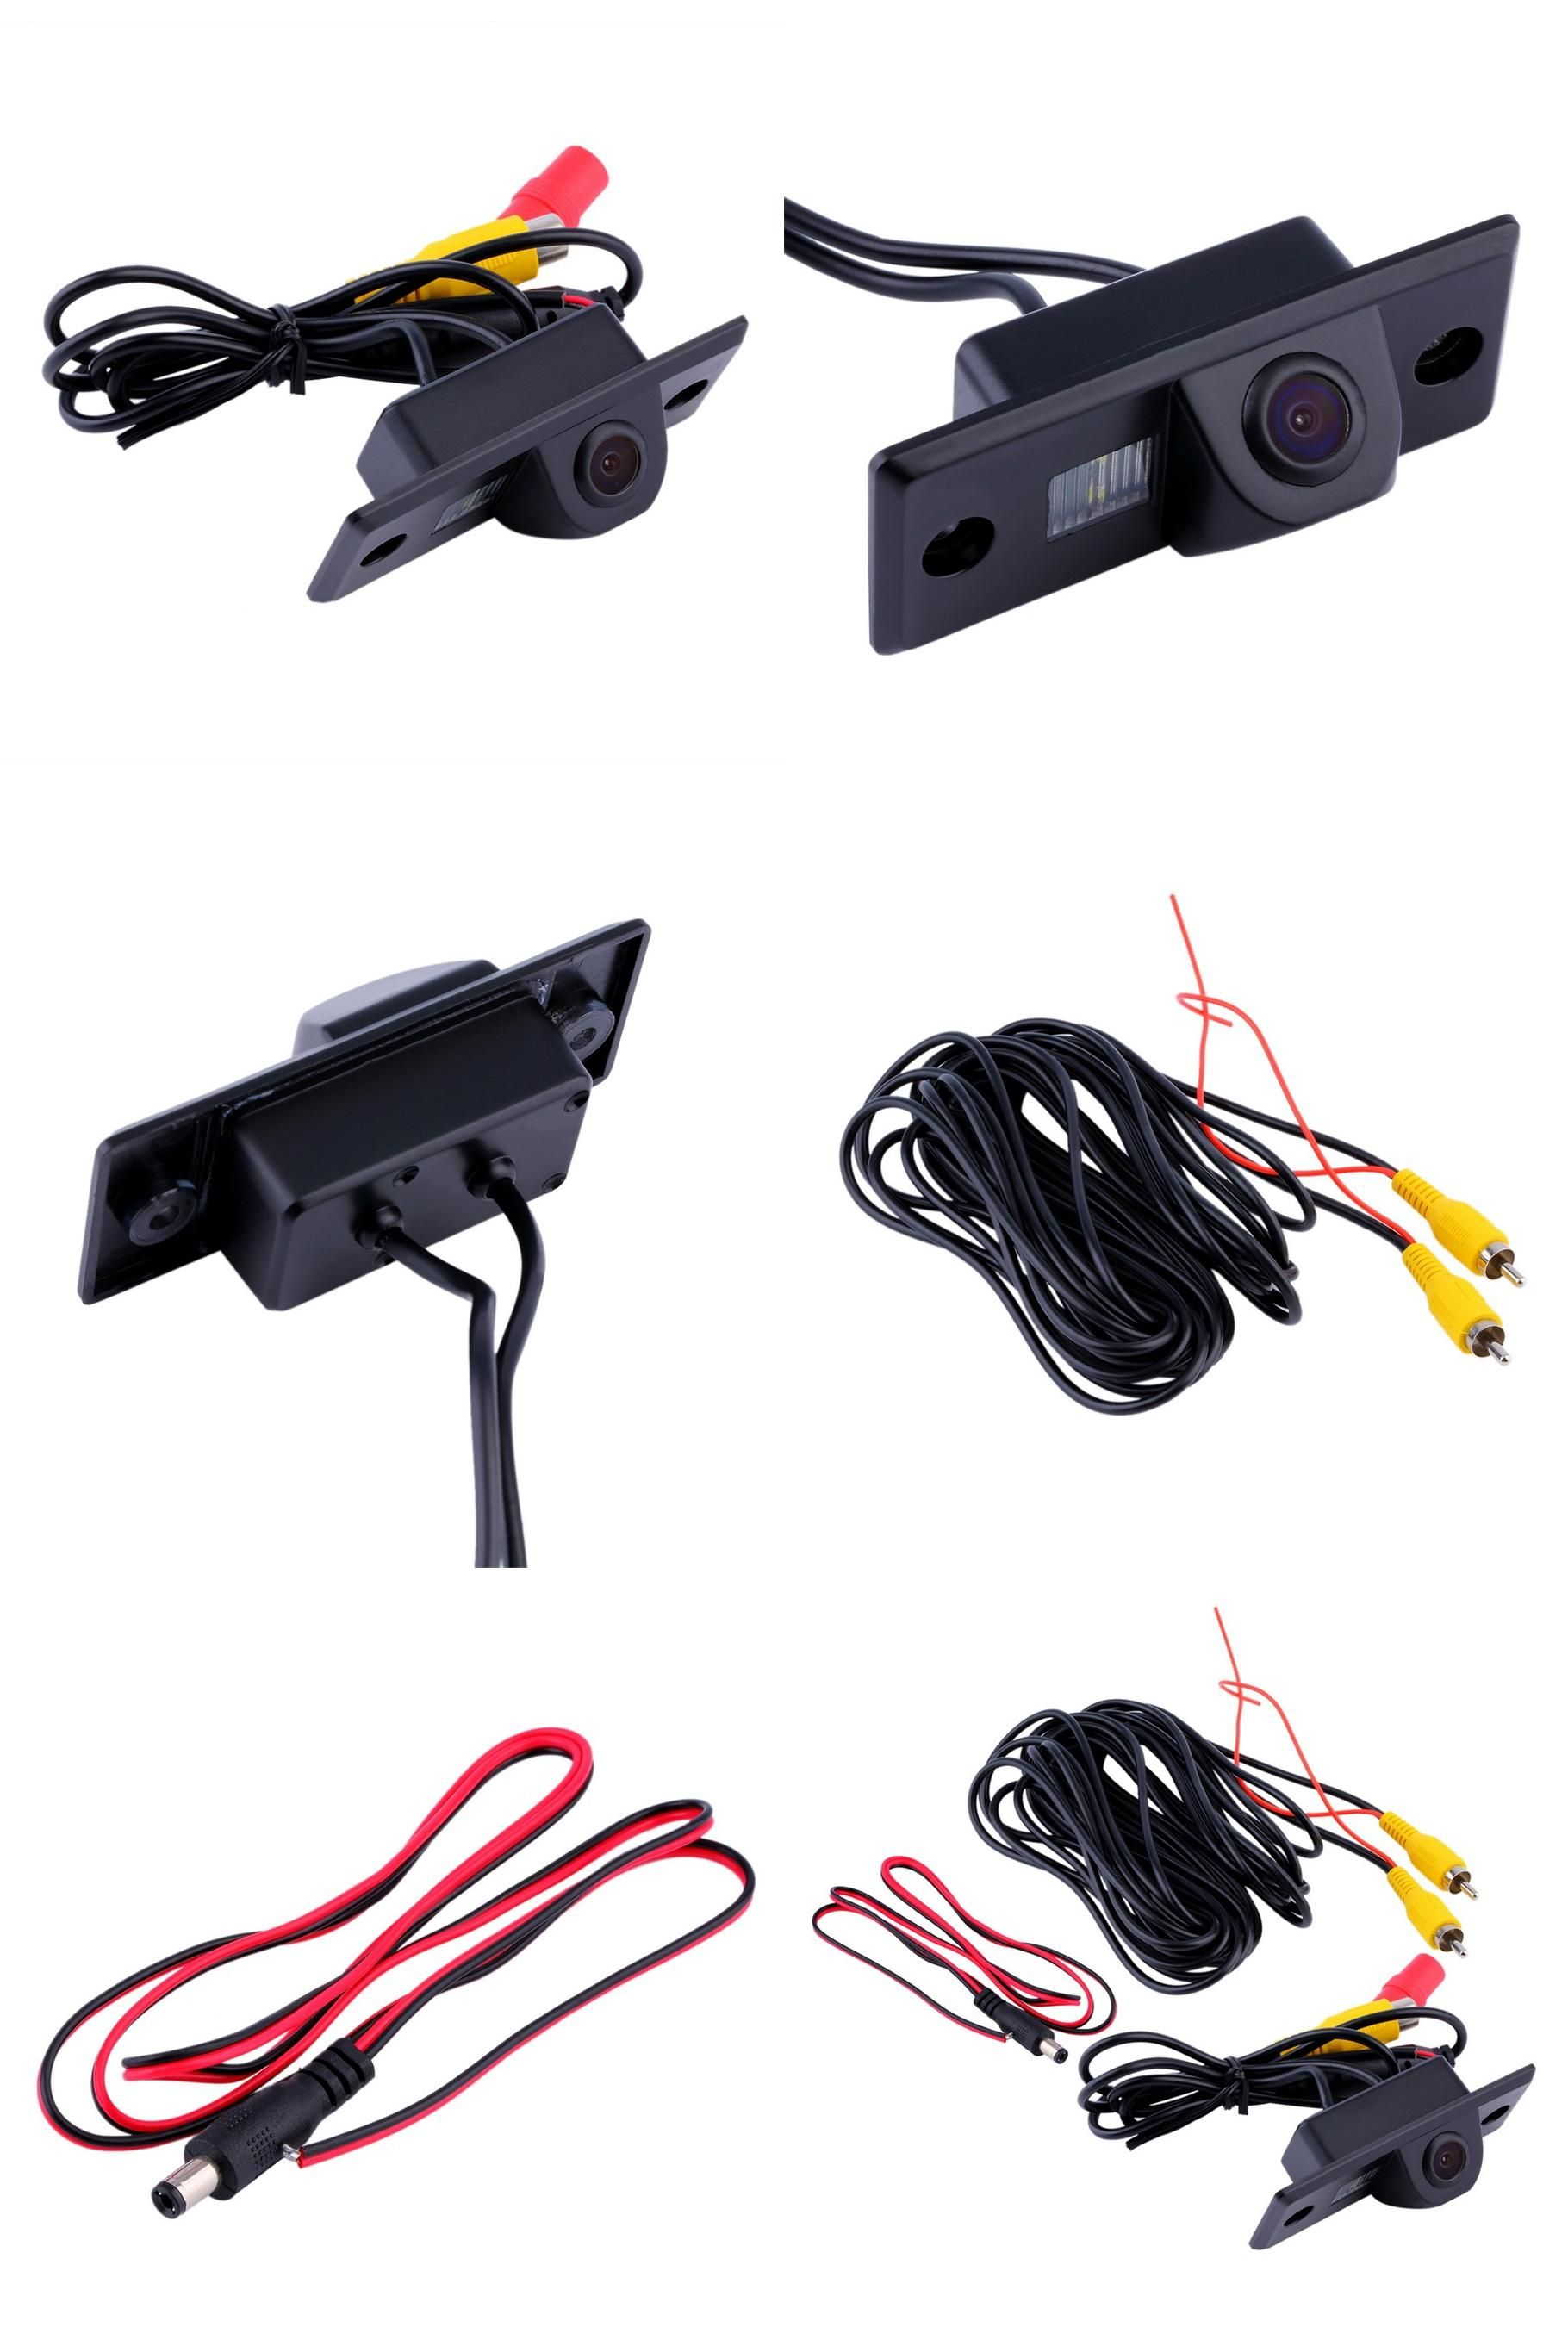 03dab0645cd57dede3f8bd4faa4dc3e0 visit to buy] car reverse camera for vw volkswagen golf jetta  at panicattacktreatment.co